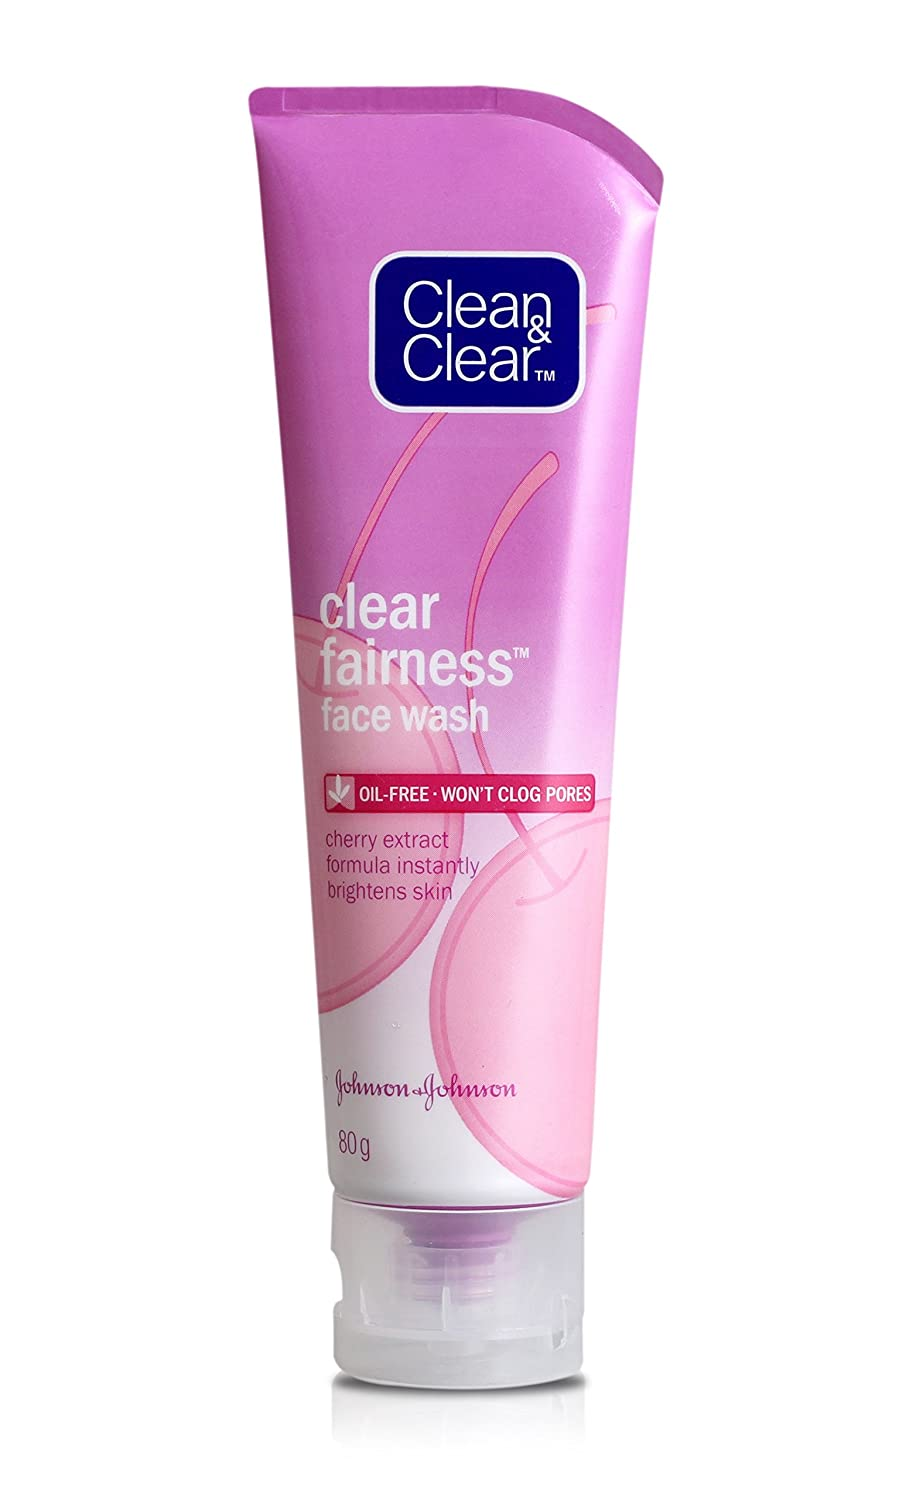 Clean And Clear Fairness Face Wash